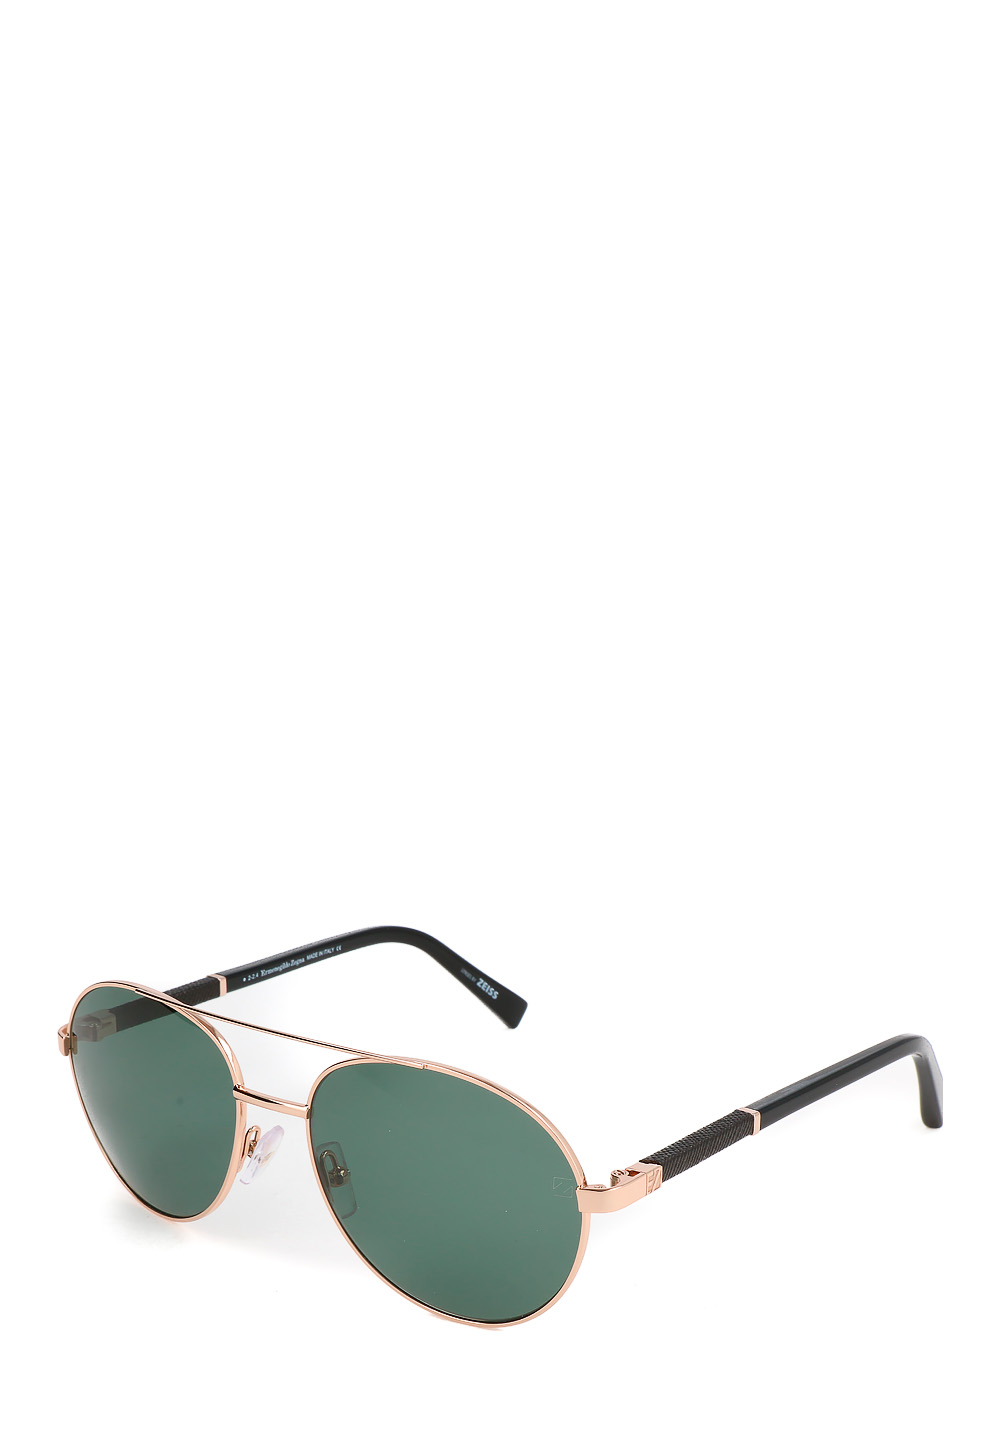 Ermenegildo Sonnenbrille Ez0013, Uv400, shiny rose gold